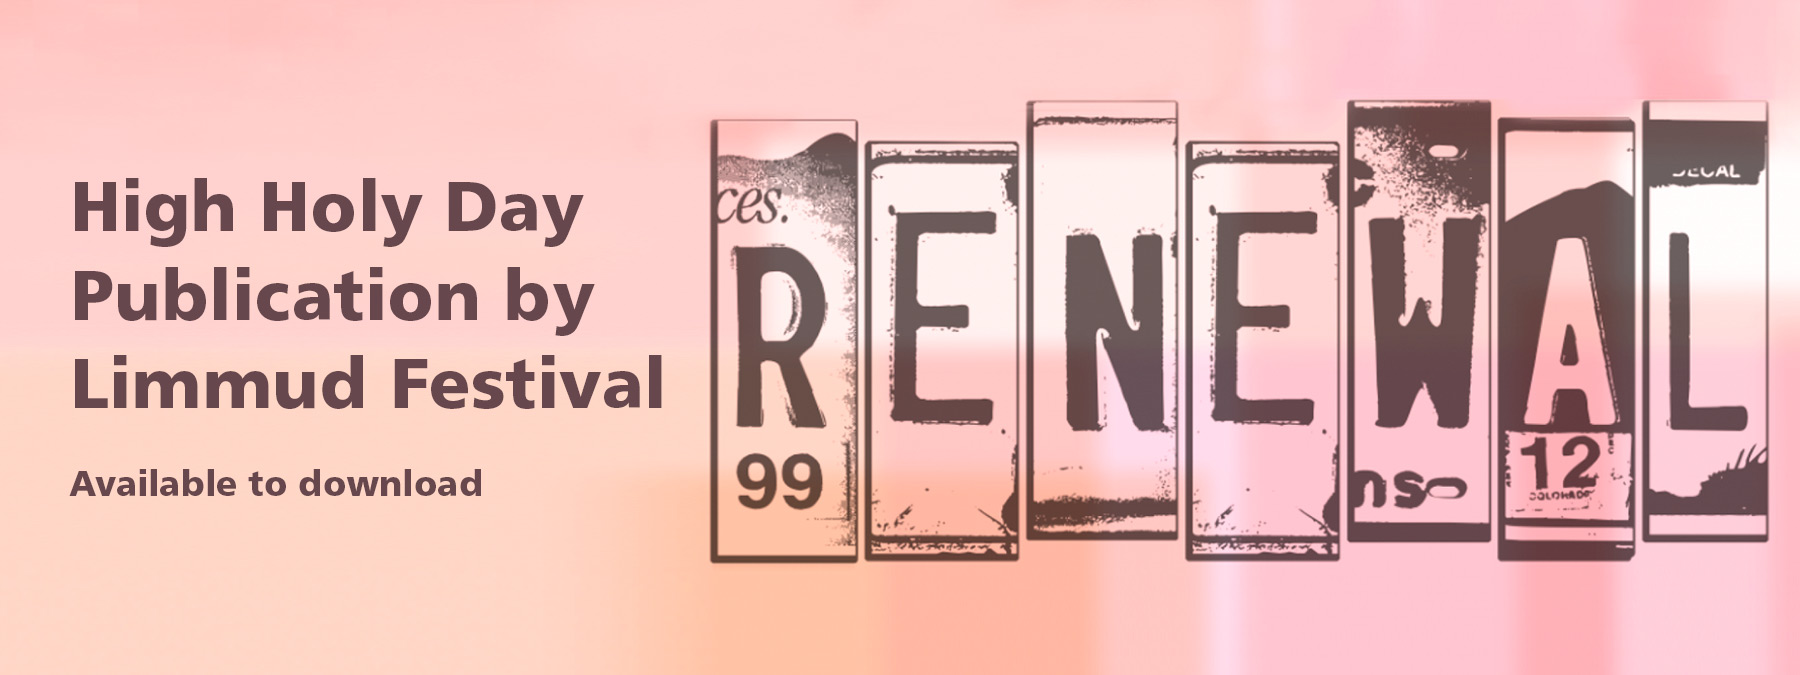 High Holy Day publication RENEWAL, by Limmud Festival